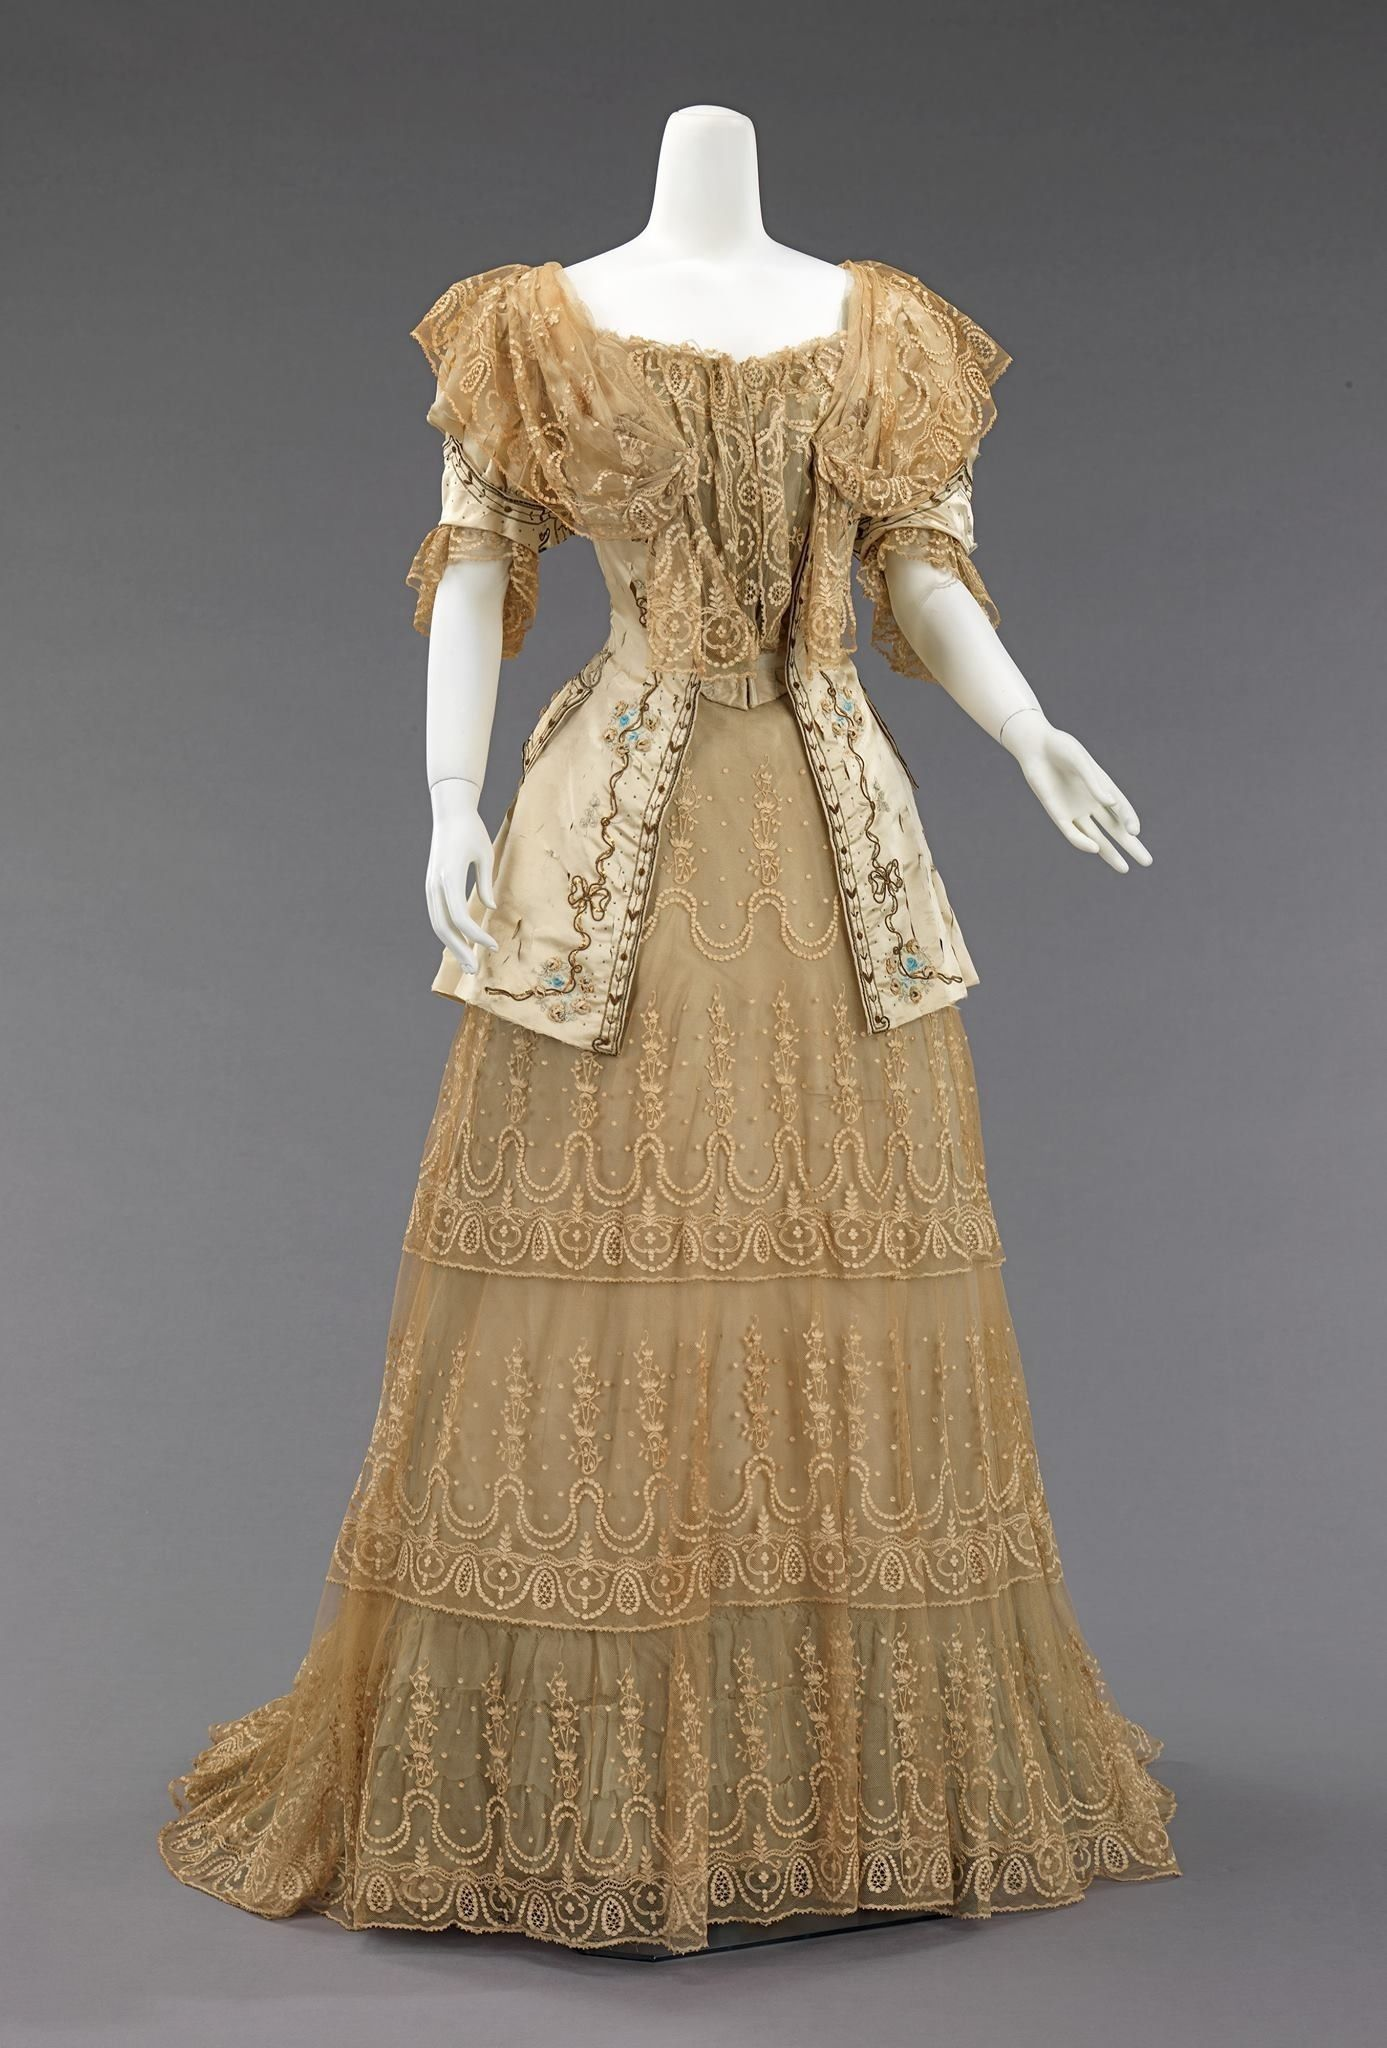 Edwardian gown inspiration